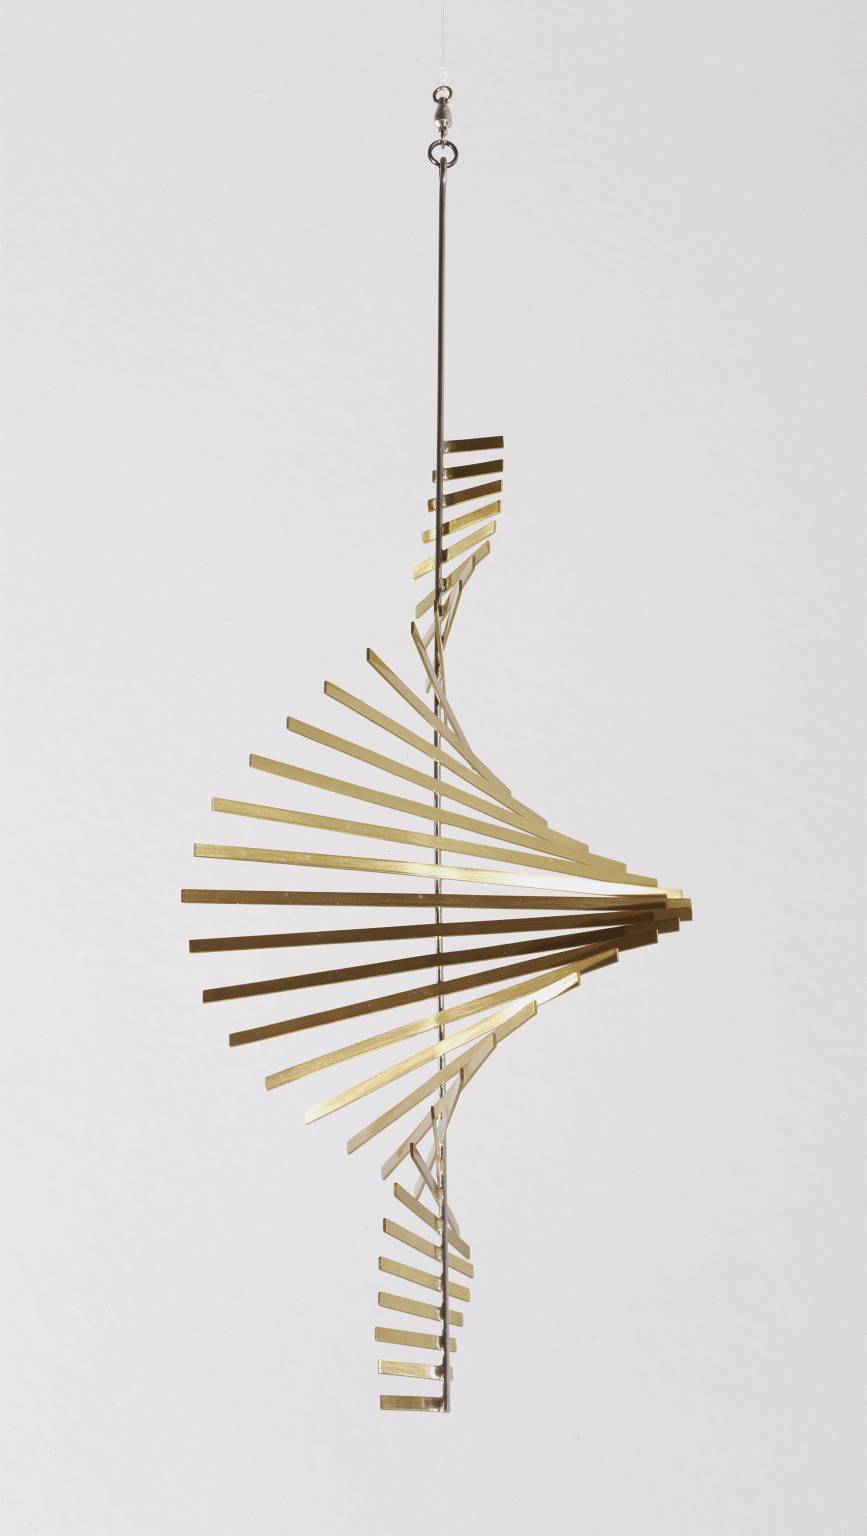 Small Screw Mobile 1953 by Kenneth Martin 1905-1984